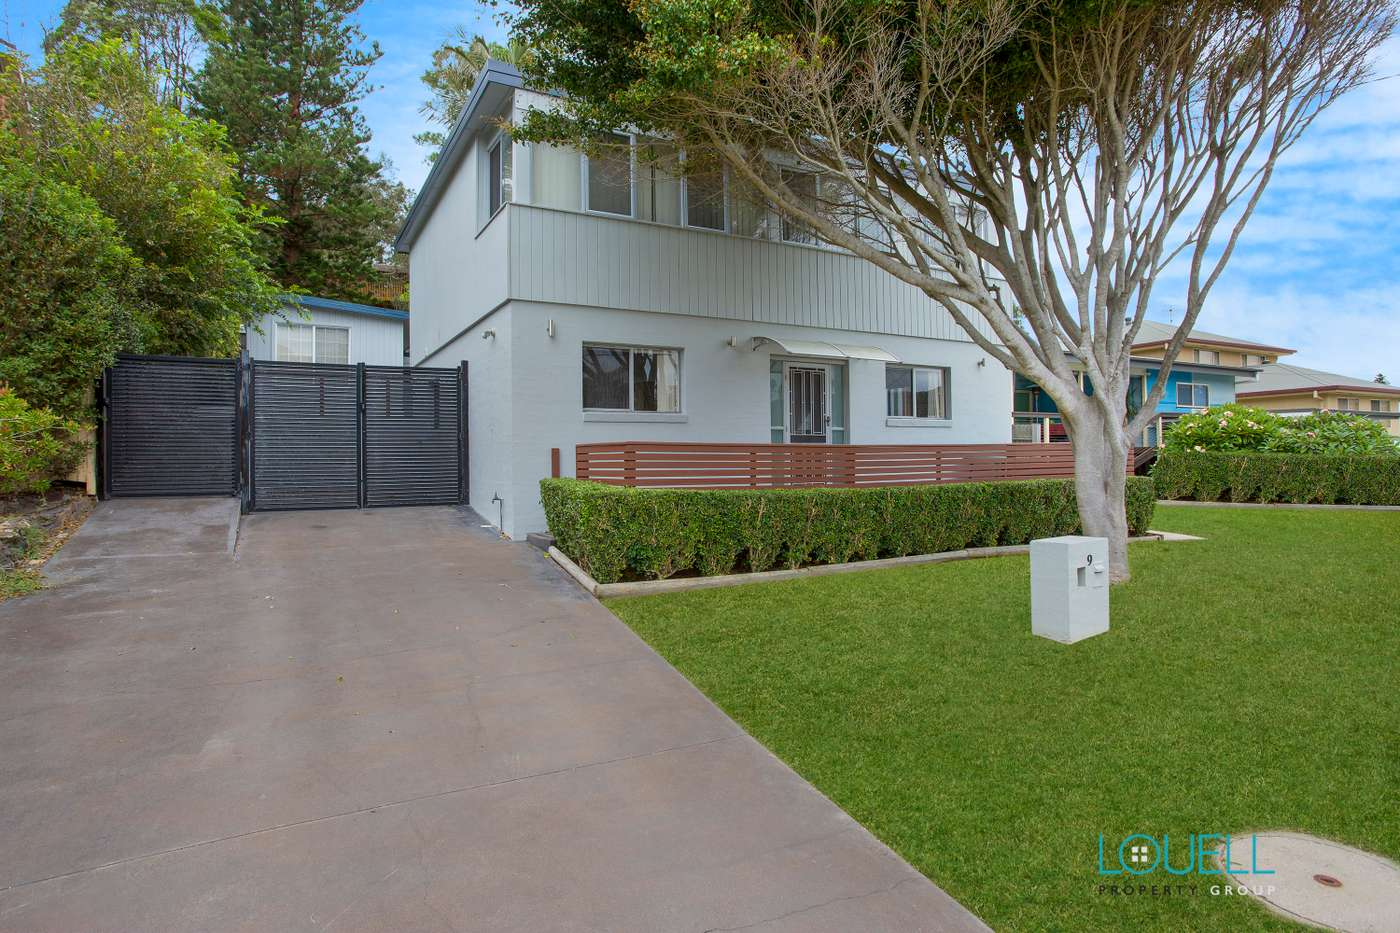 Main view of Homely flat listing, 9a Oceano Street, Copacabana, NSW 2251